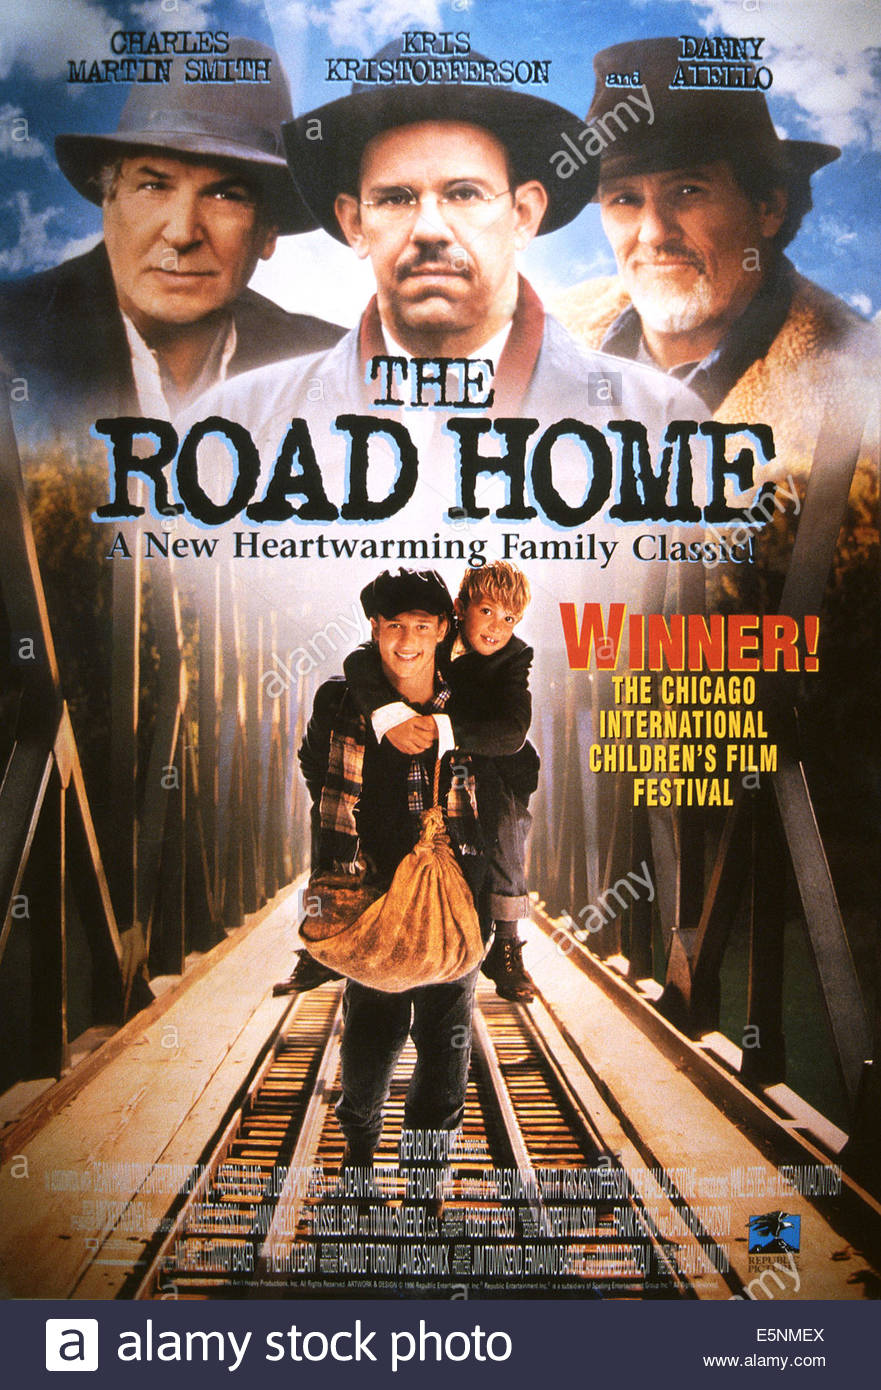 the-road-home-aka-brothers-destiny-us-poster-top-from-left-danny-aiello-E5NMEX.jpg